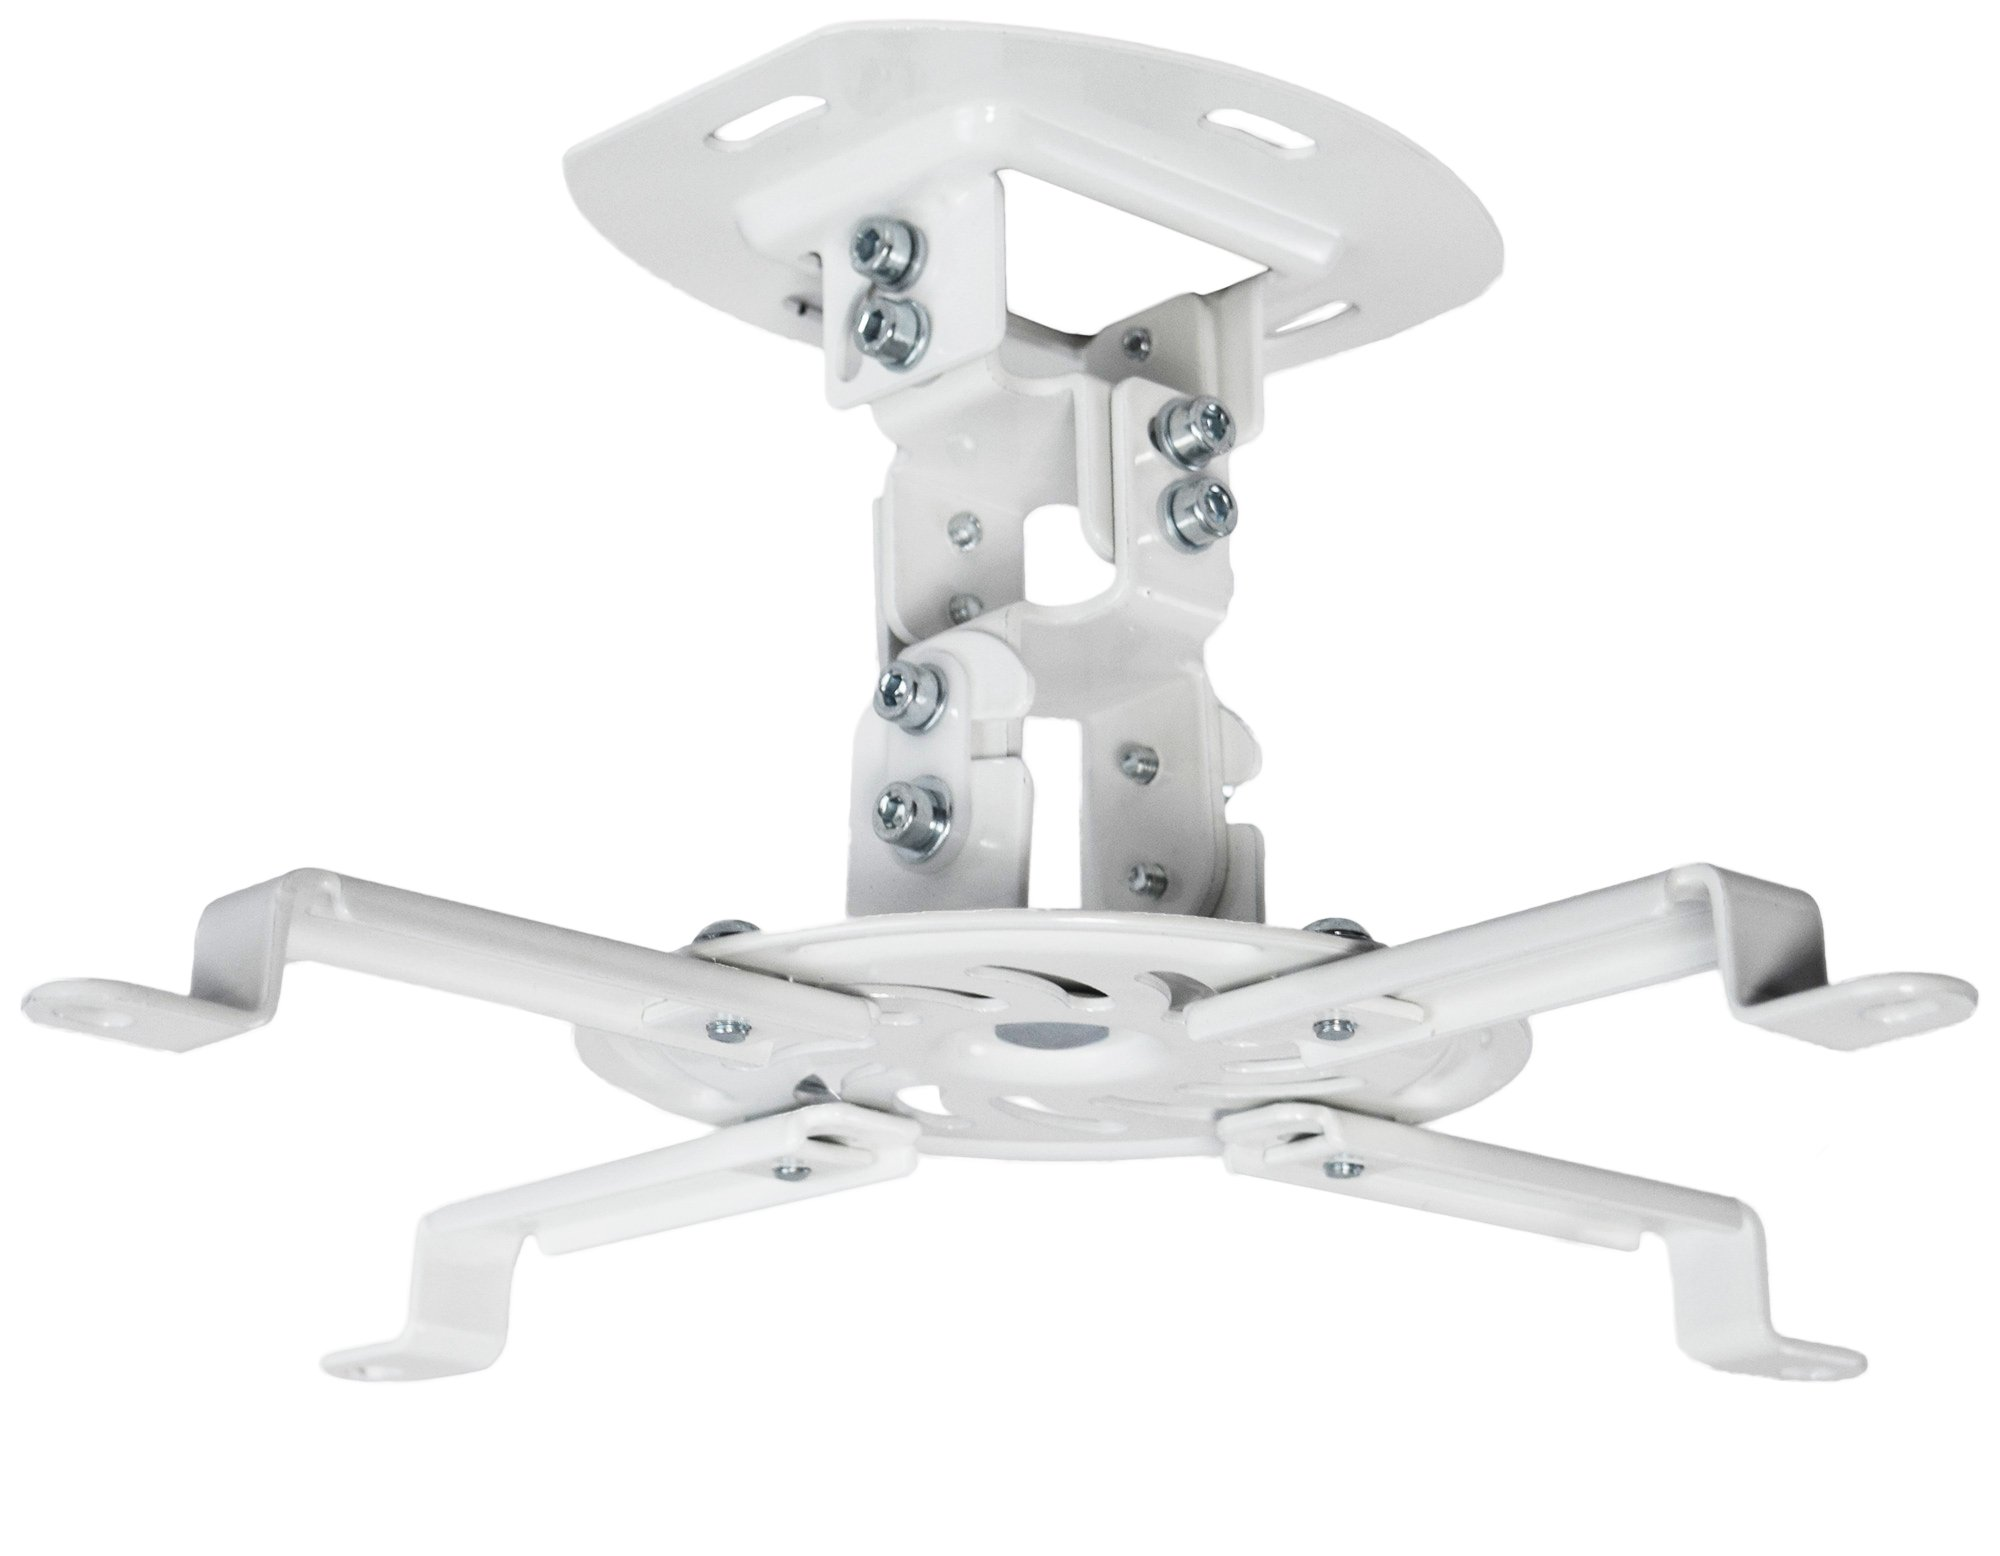 VIVO Universal Adjustable White Ceiling Projector | Projection Mount Extending Arms Mounting Bracket (MOUNT-VP01W) by VIVO